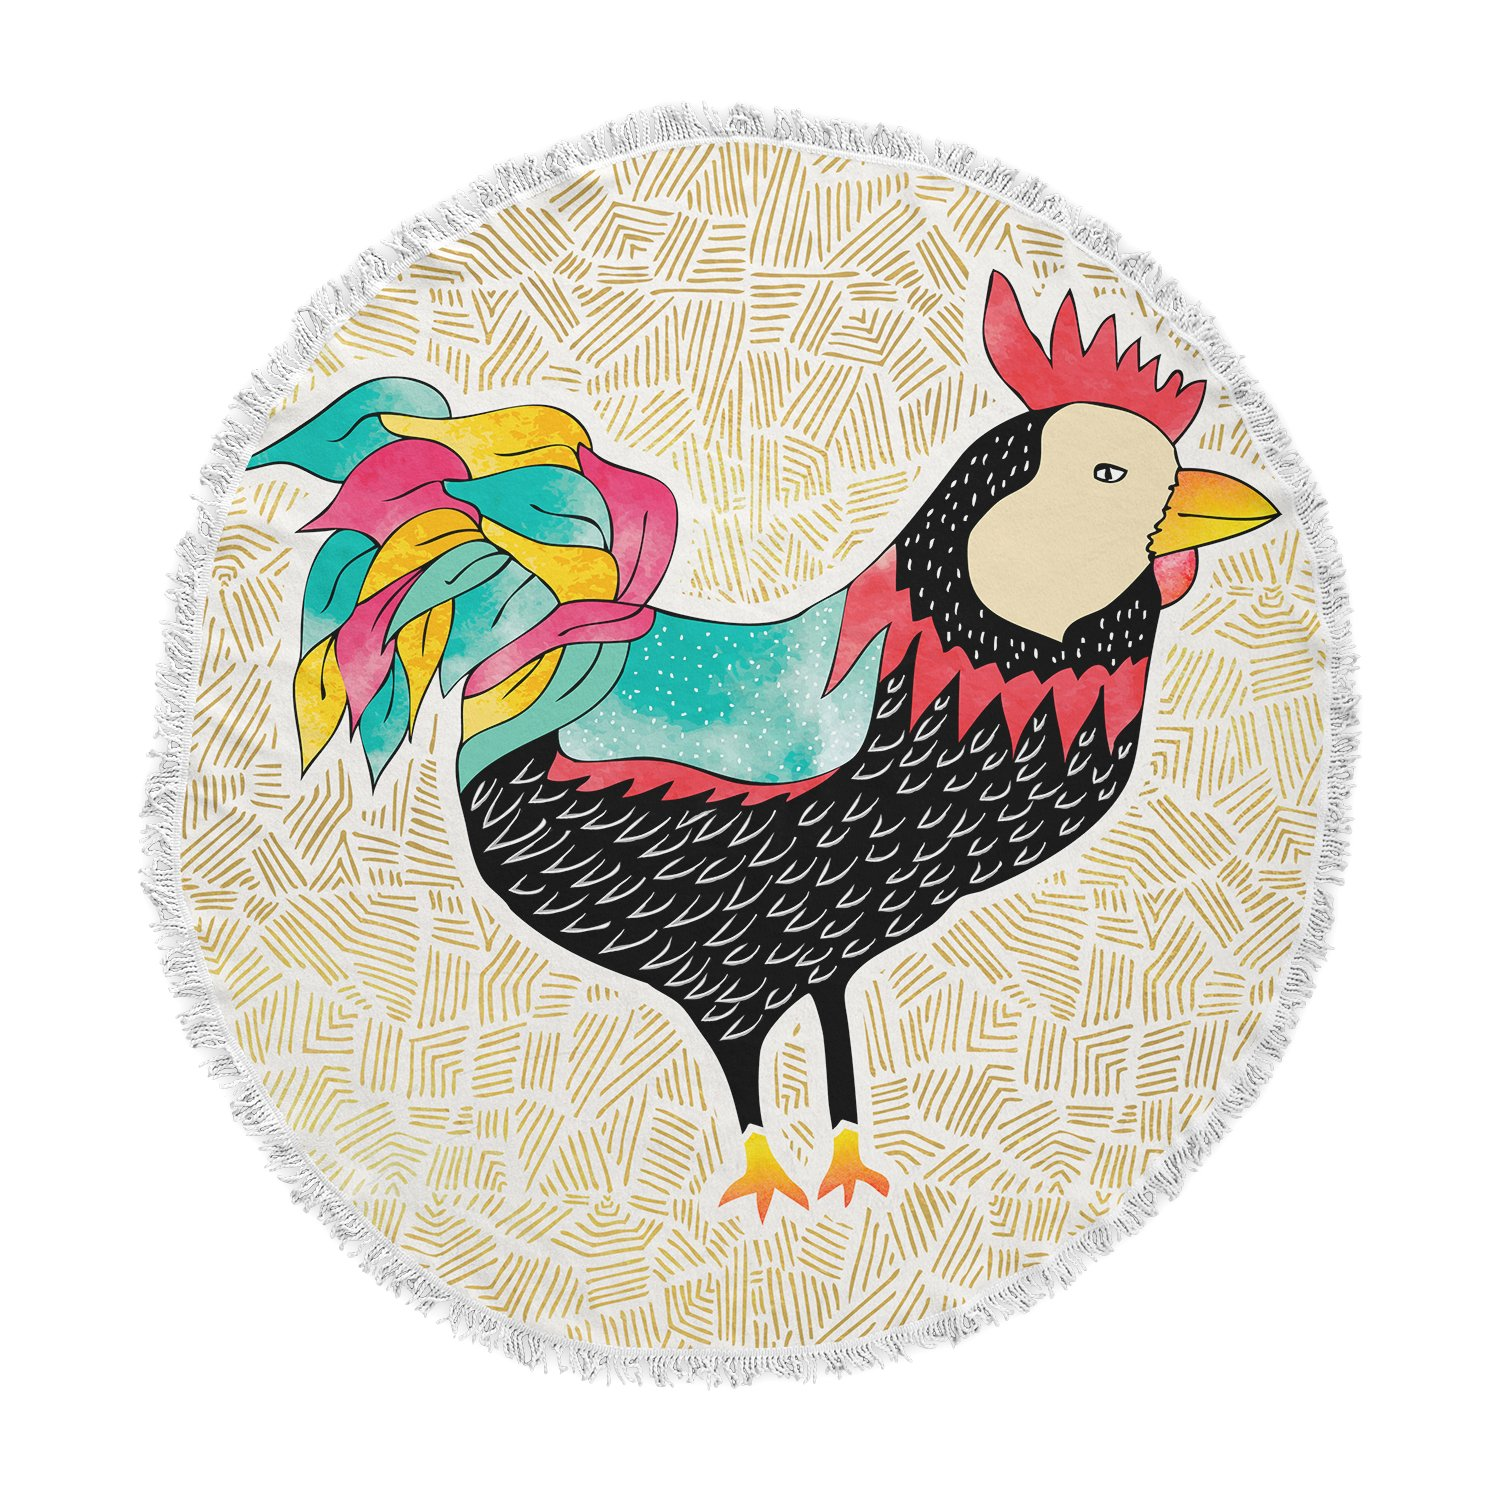 Kess InHouse Pom Graphic Design Cuckaroo Rooster Black Gold Round Beach Towel Blanket